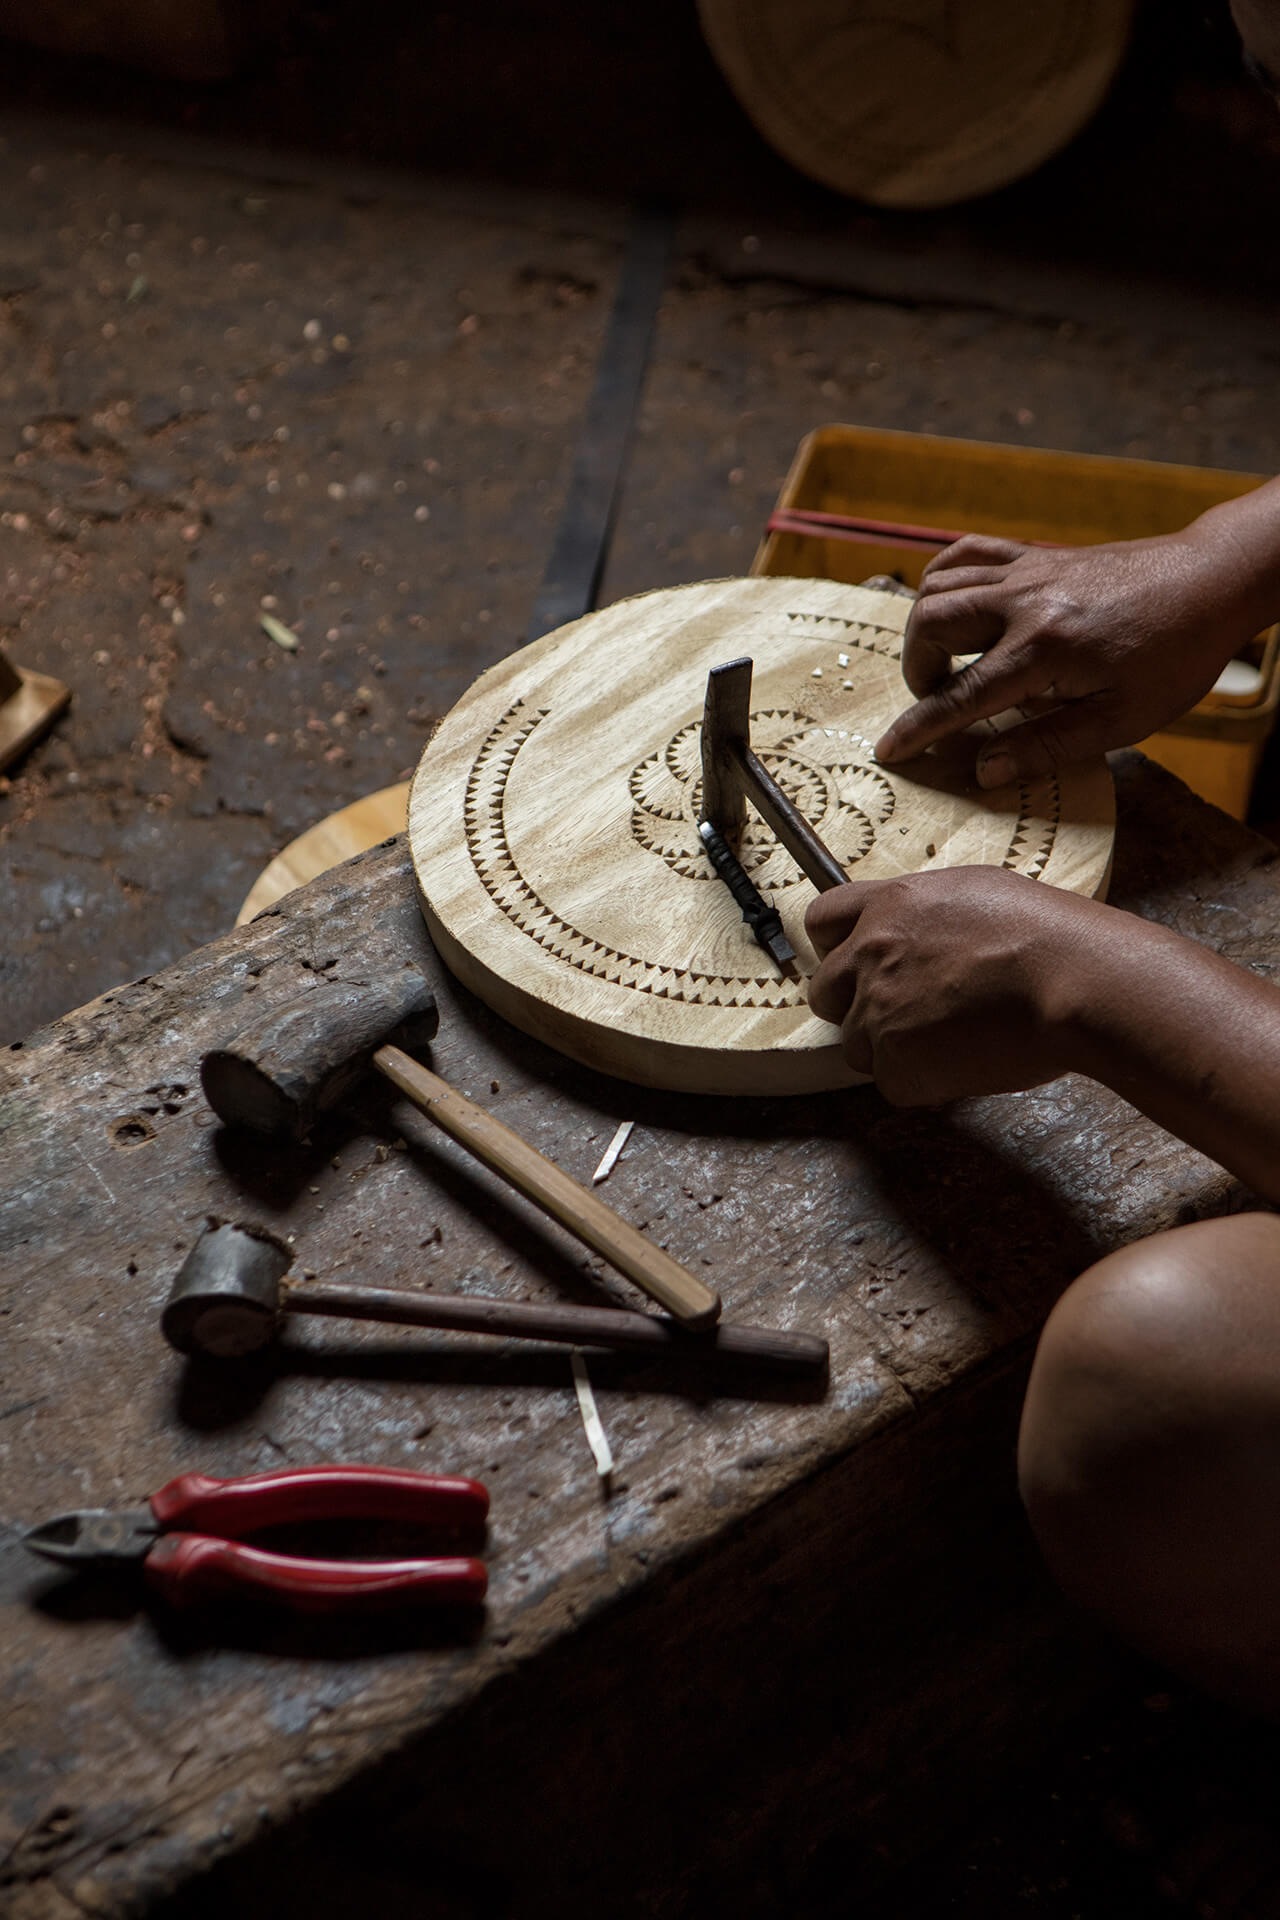 Maranao artisinal craftsman hammering geometric and floral patterns on a wooden plate.